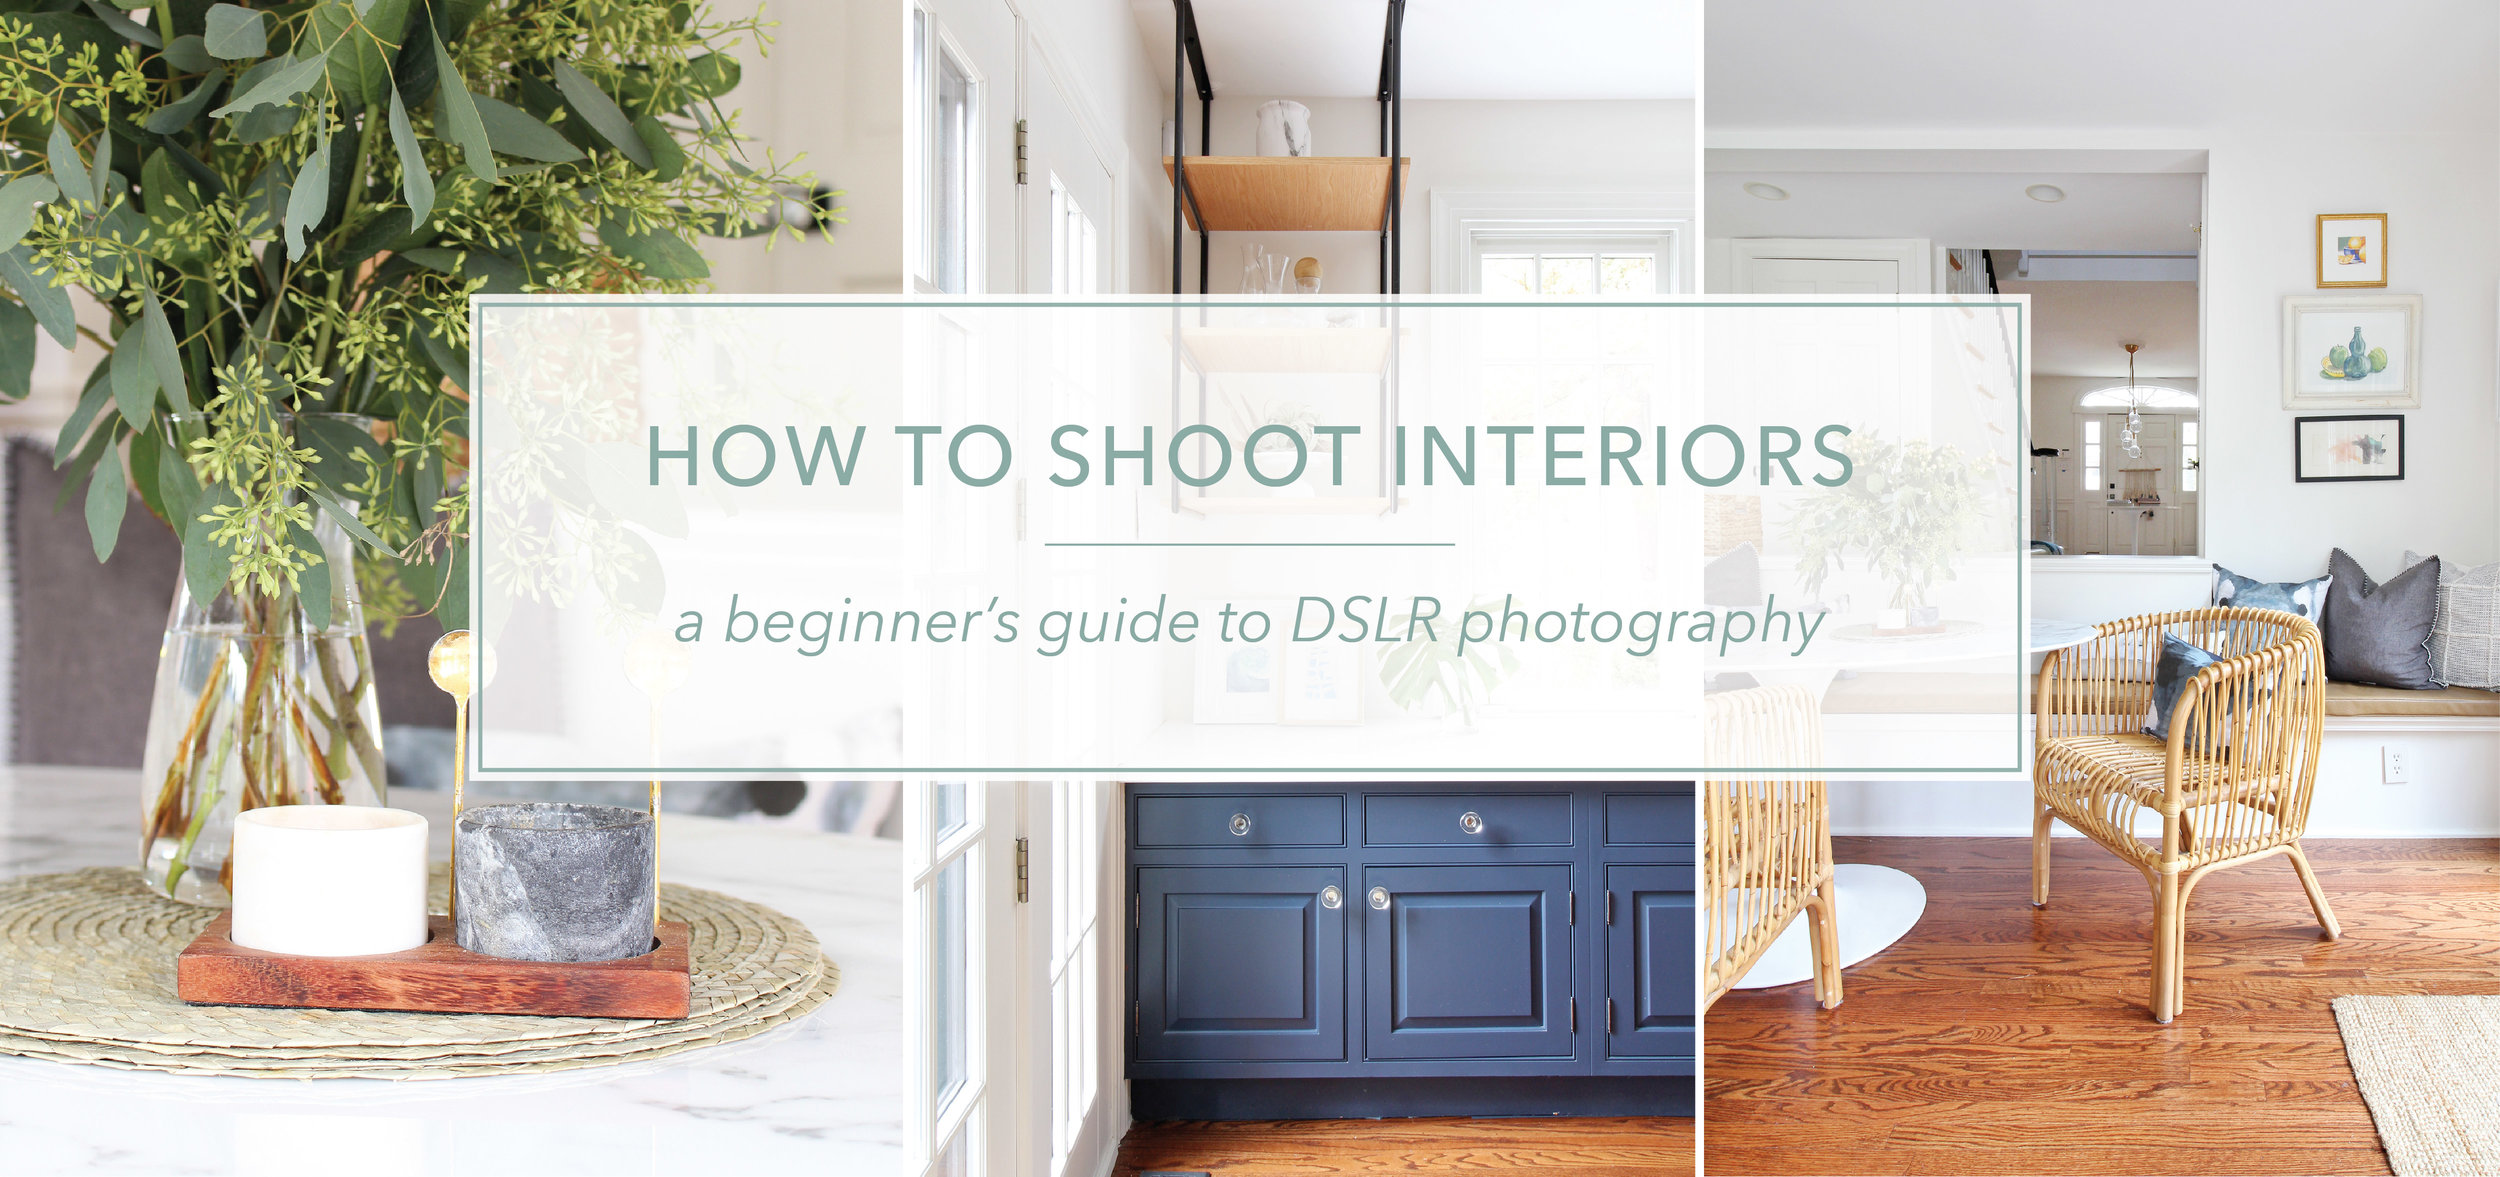 Want to learn how to shoot beautiful, Instagram-worthy photos of your projects or your own home? This online course will teach you how. You'll learn the basics of DSLR photography, how to set up the perfect shot, editing techniques, and a whole lot more.